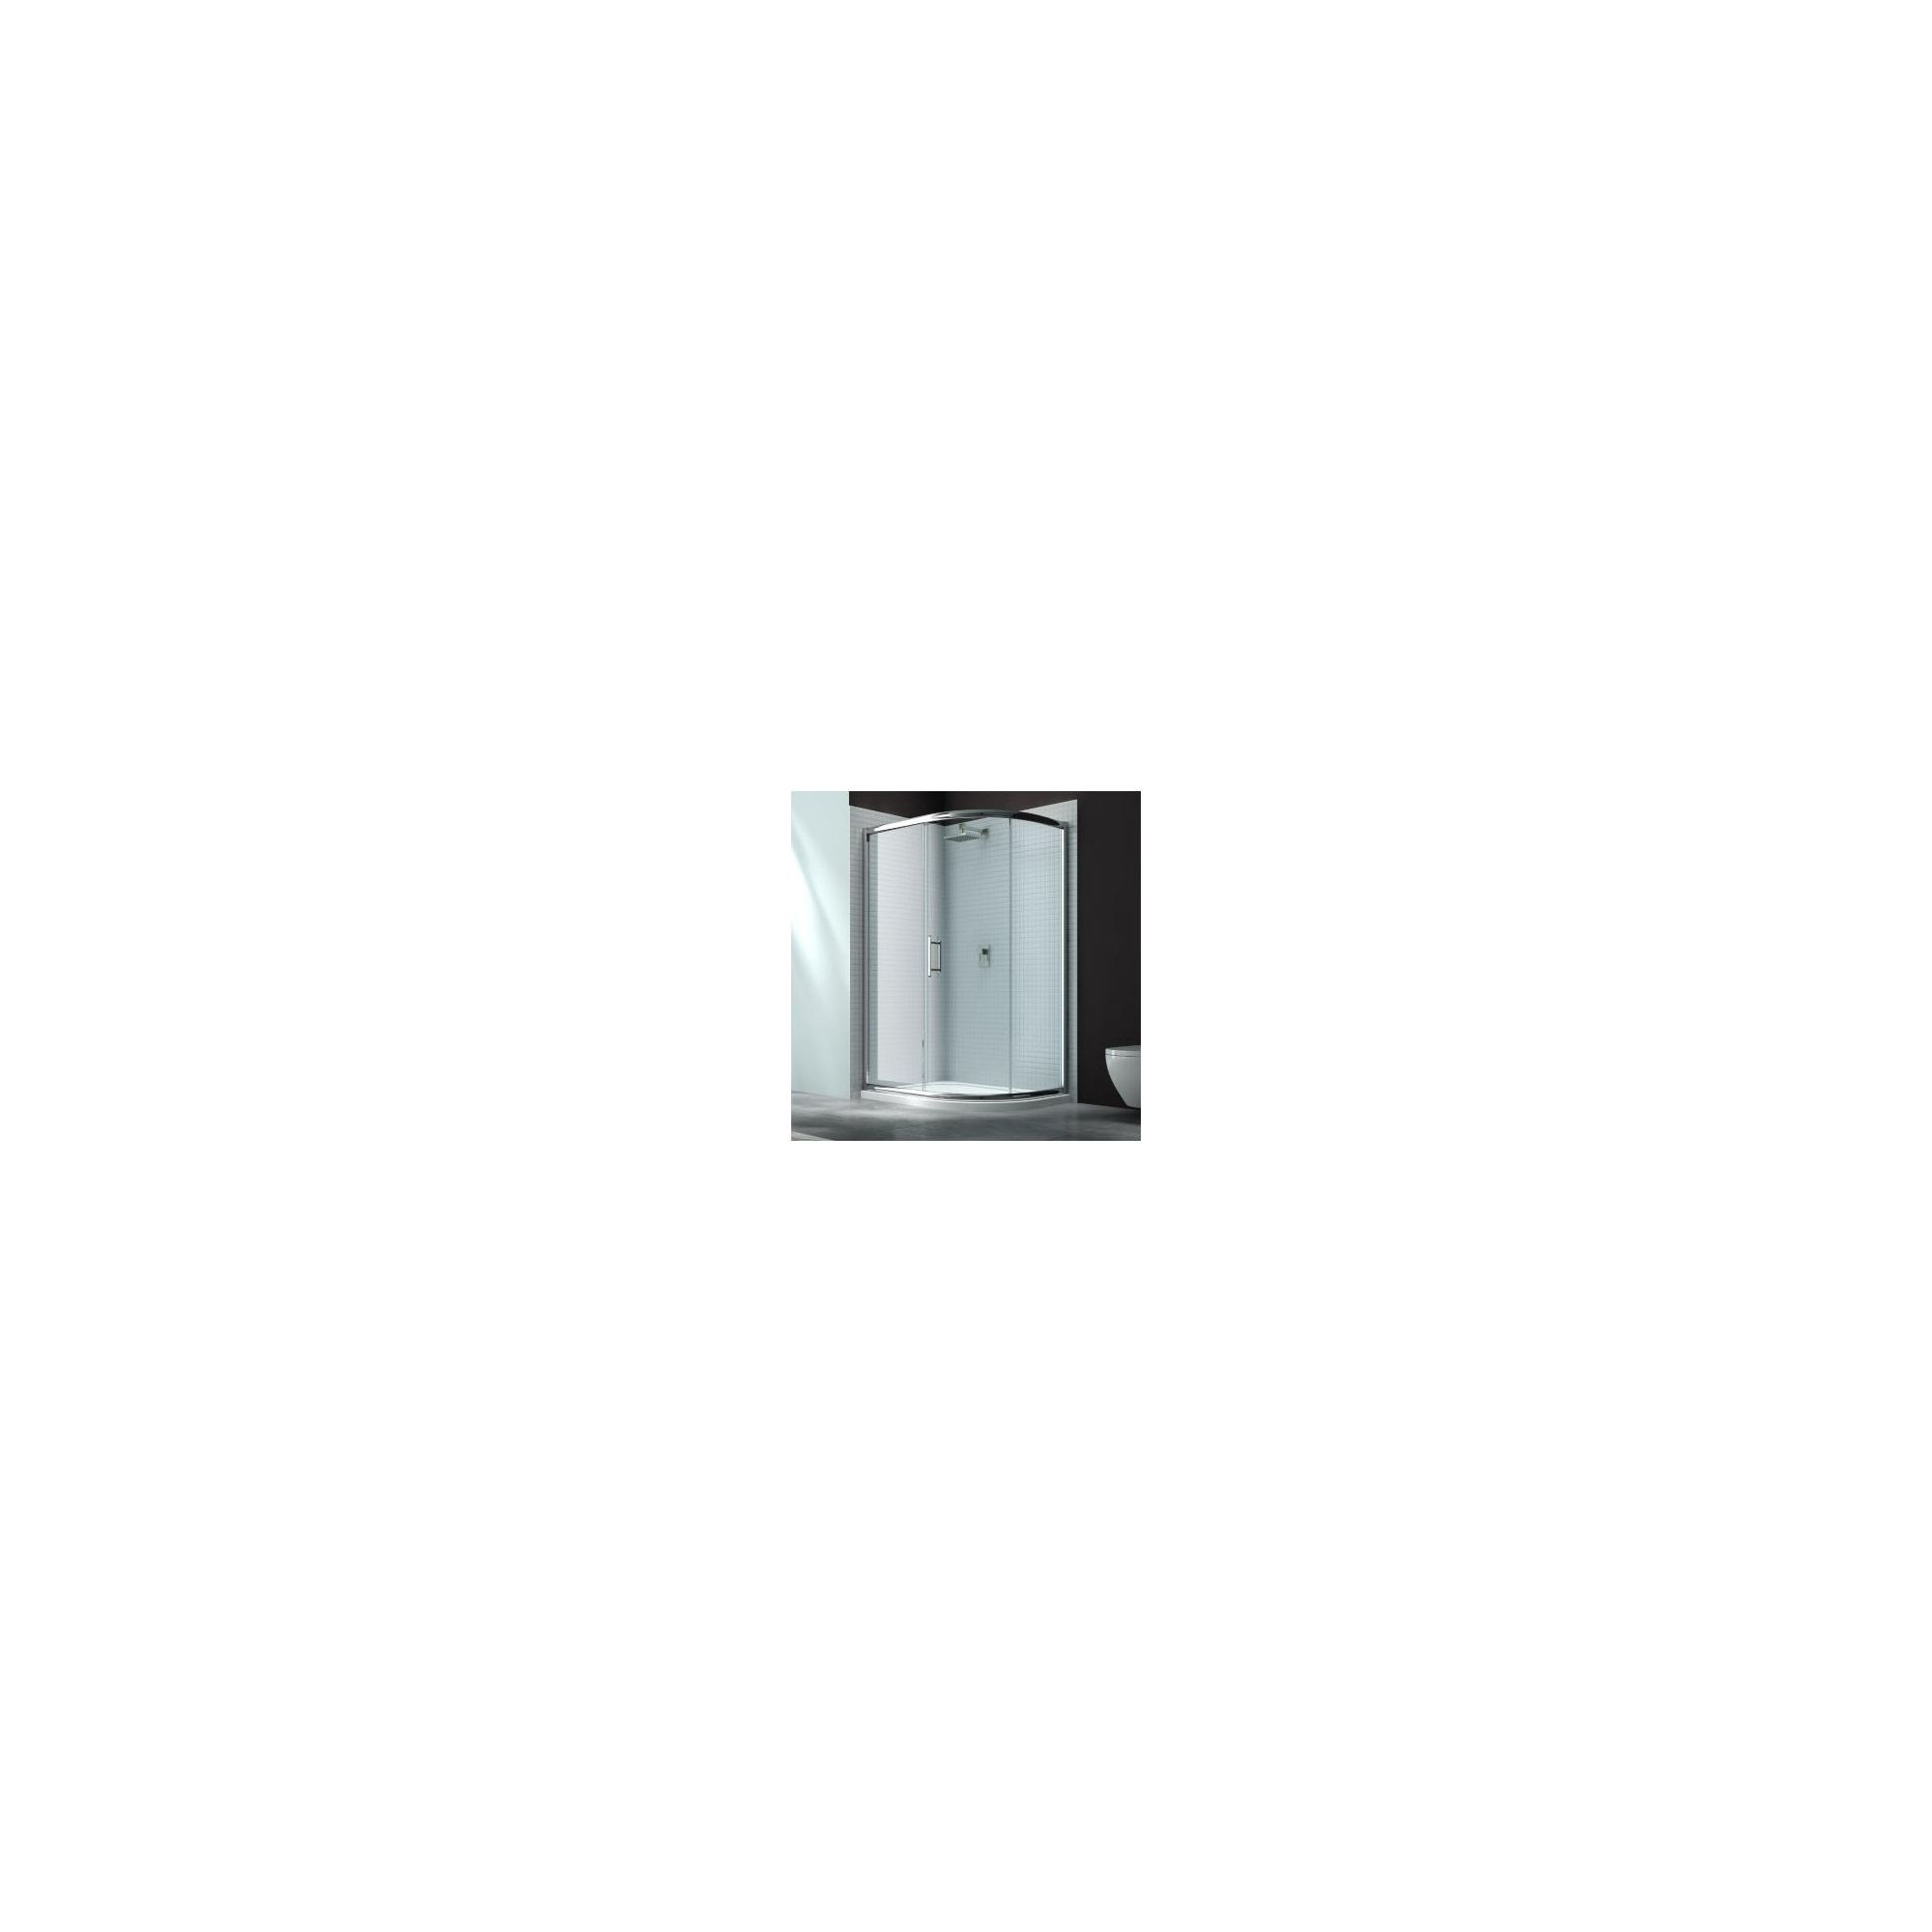 Merlyn Series 6 Offset Quadrant Shower Door, 1000mm x 800mm, Chrome Frame, 6mm Glass at Tesco Direct